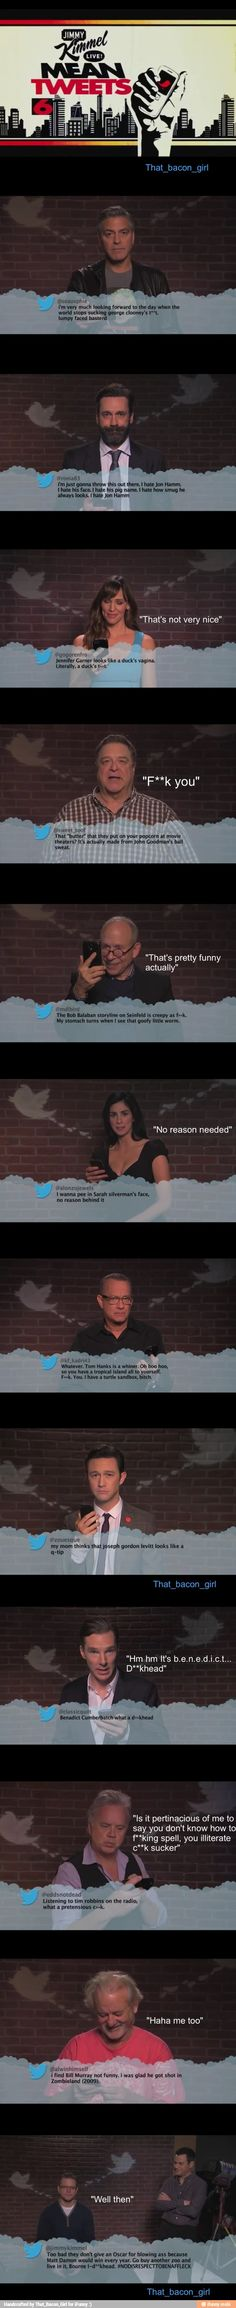 Celebrities reading mean tweets about themselves, reactions r the best especially Matt damons